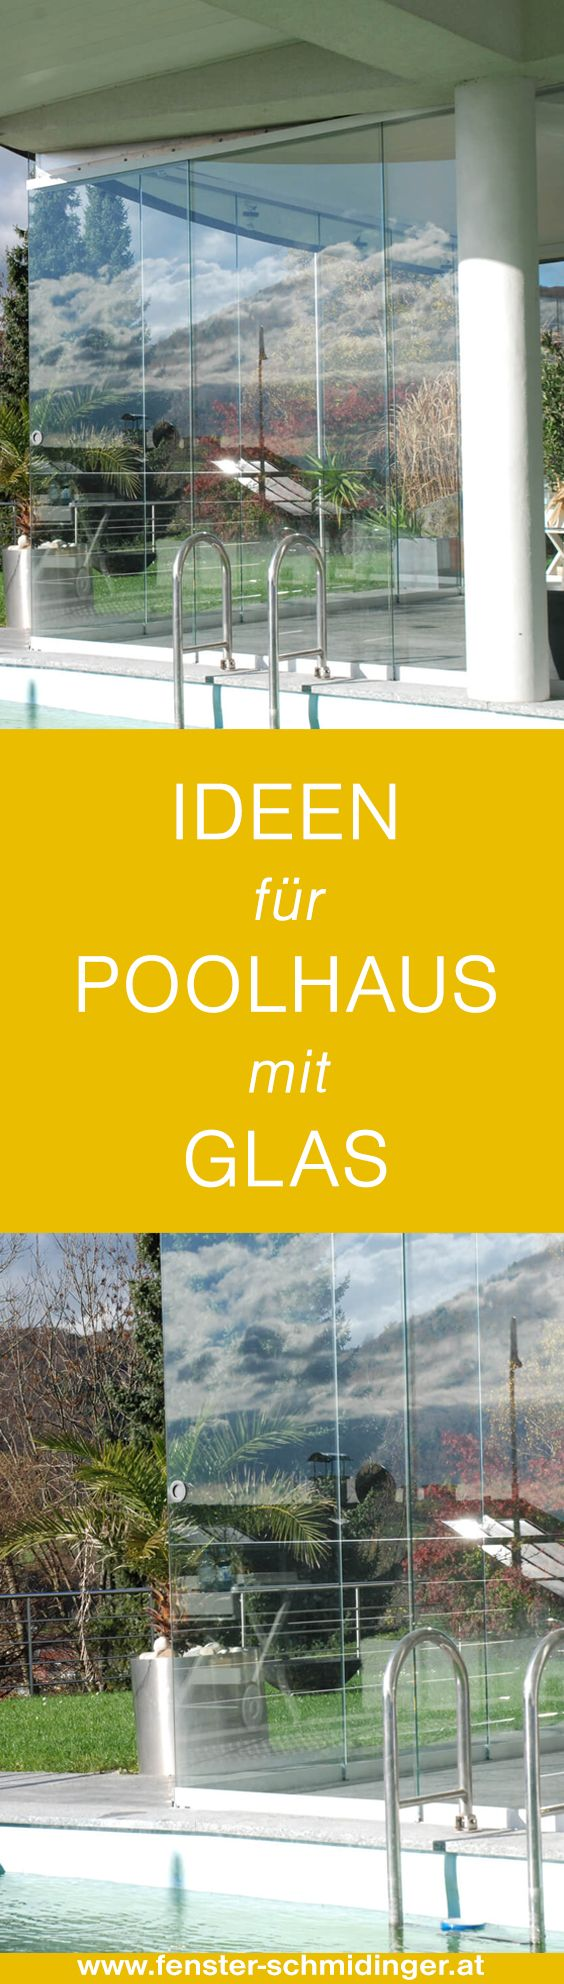 #Poolhaus #Glas #Ideen